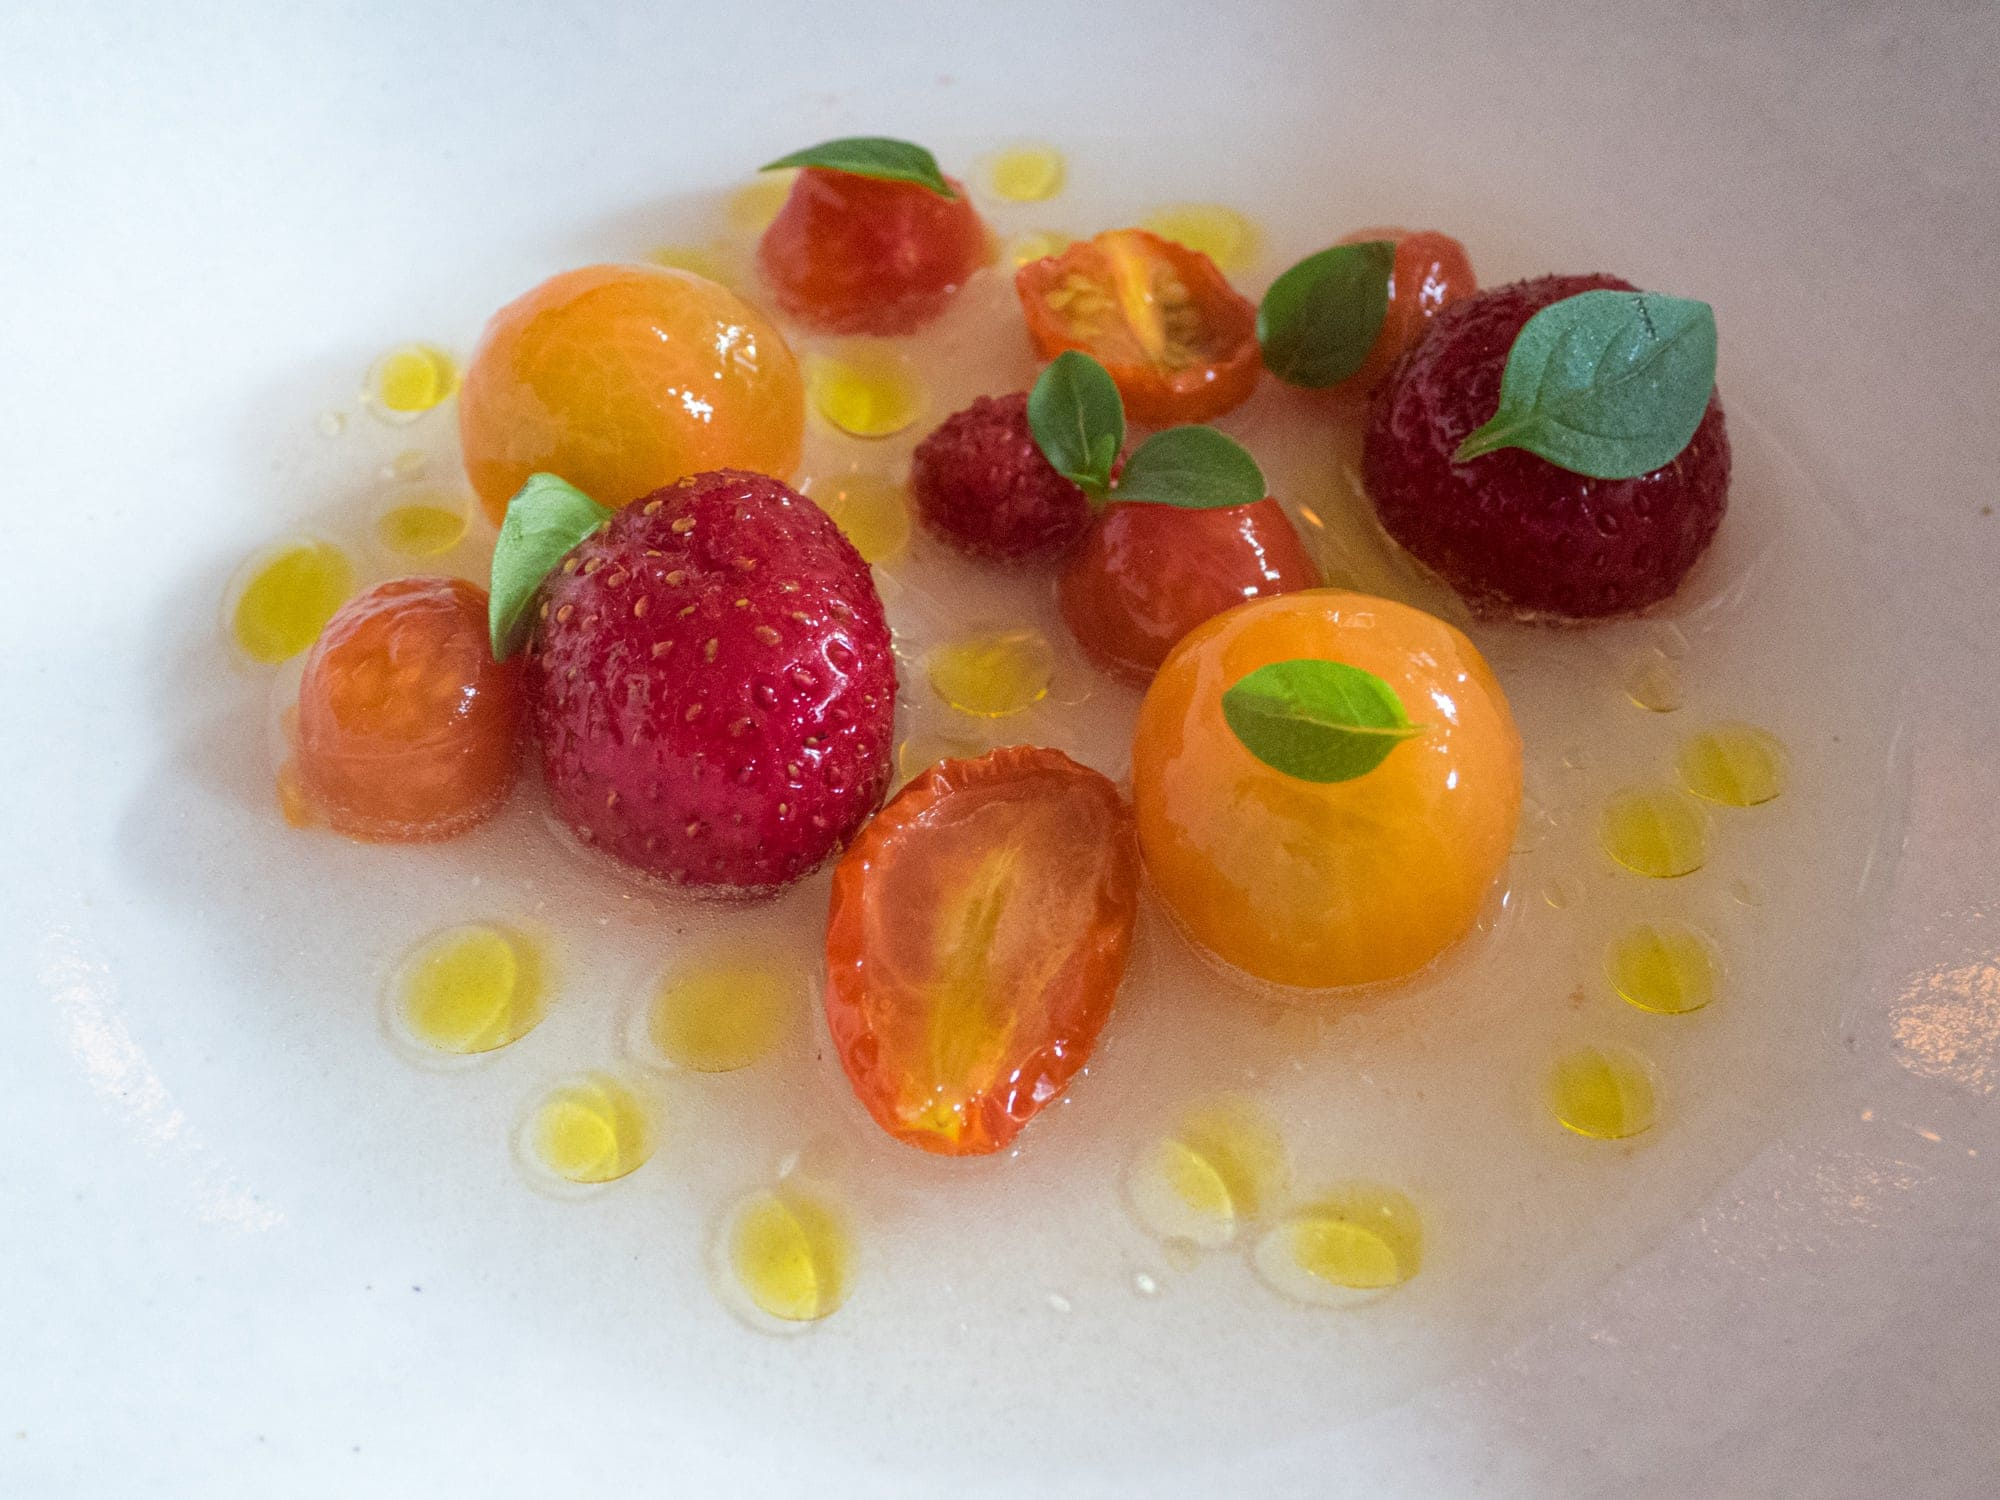 Tomatoes and strawberries at Eleven Madison Park